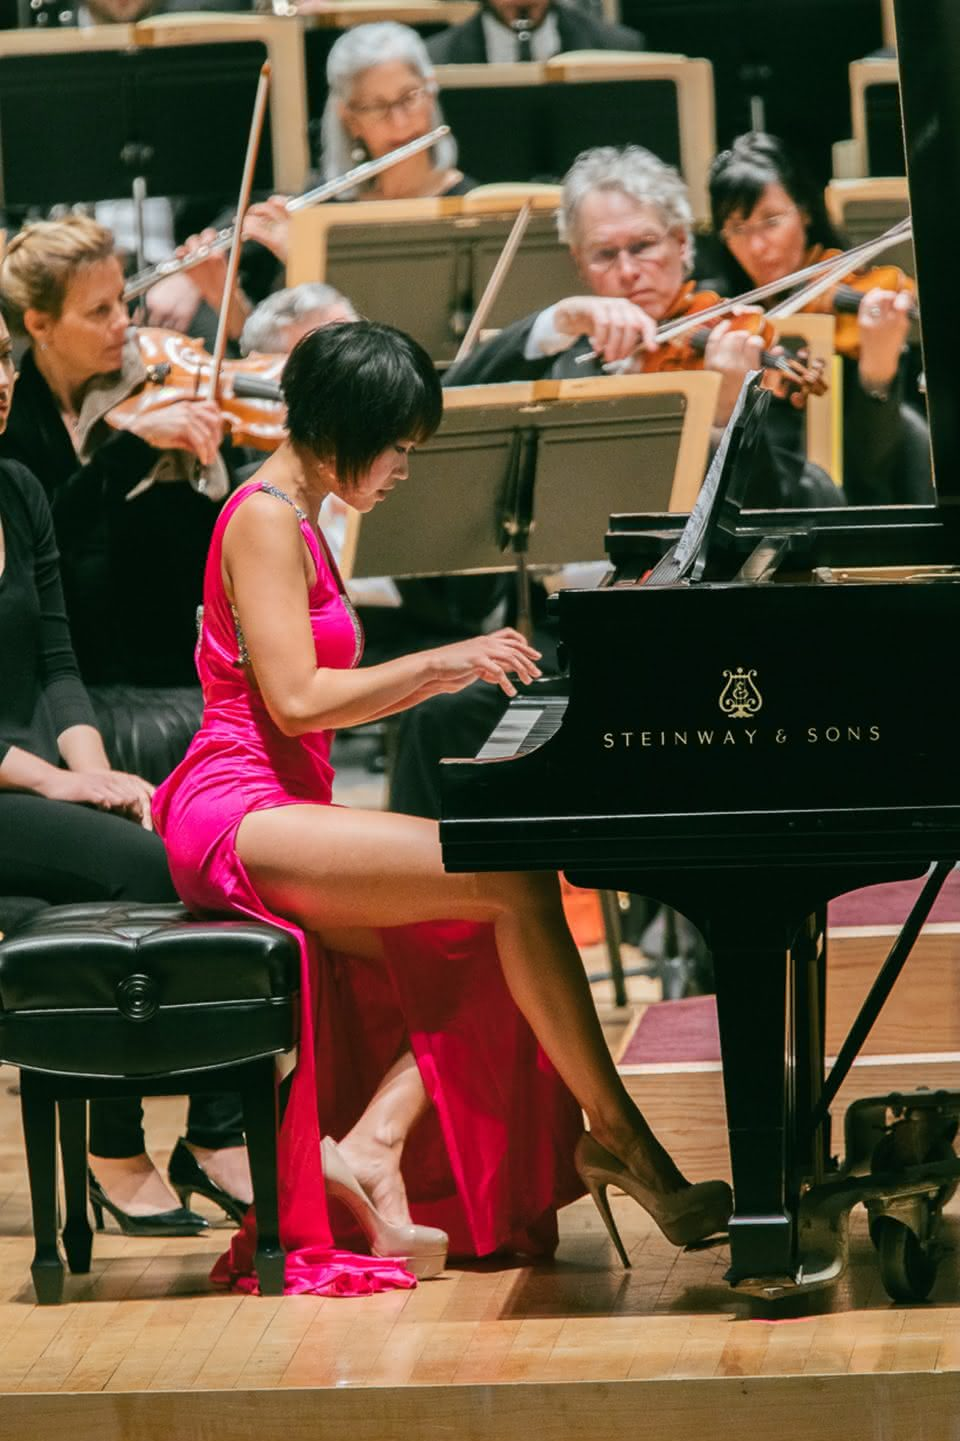 Rachmaninov / Scriabin / Ligeti / Prokofiev: The Berlin Recital (Yuja Wang)